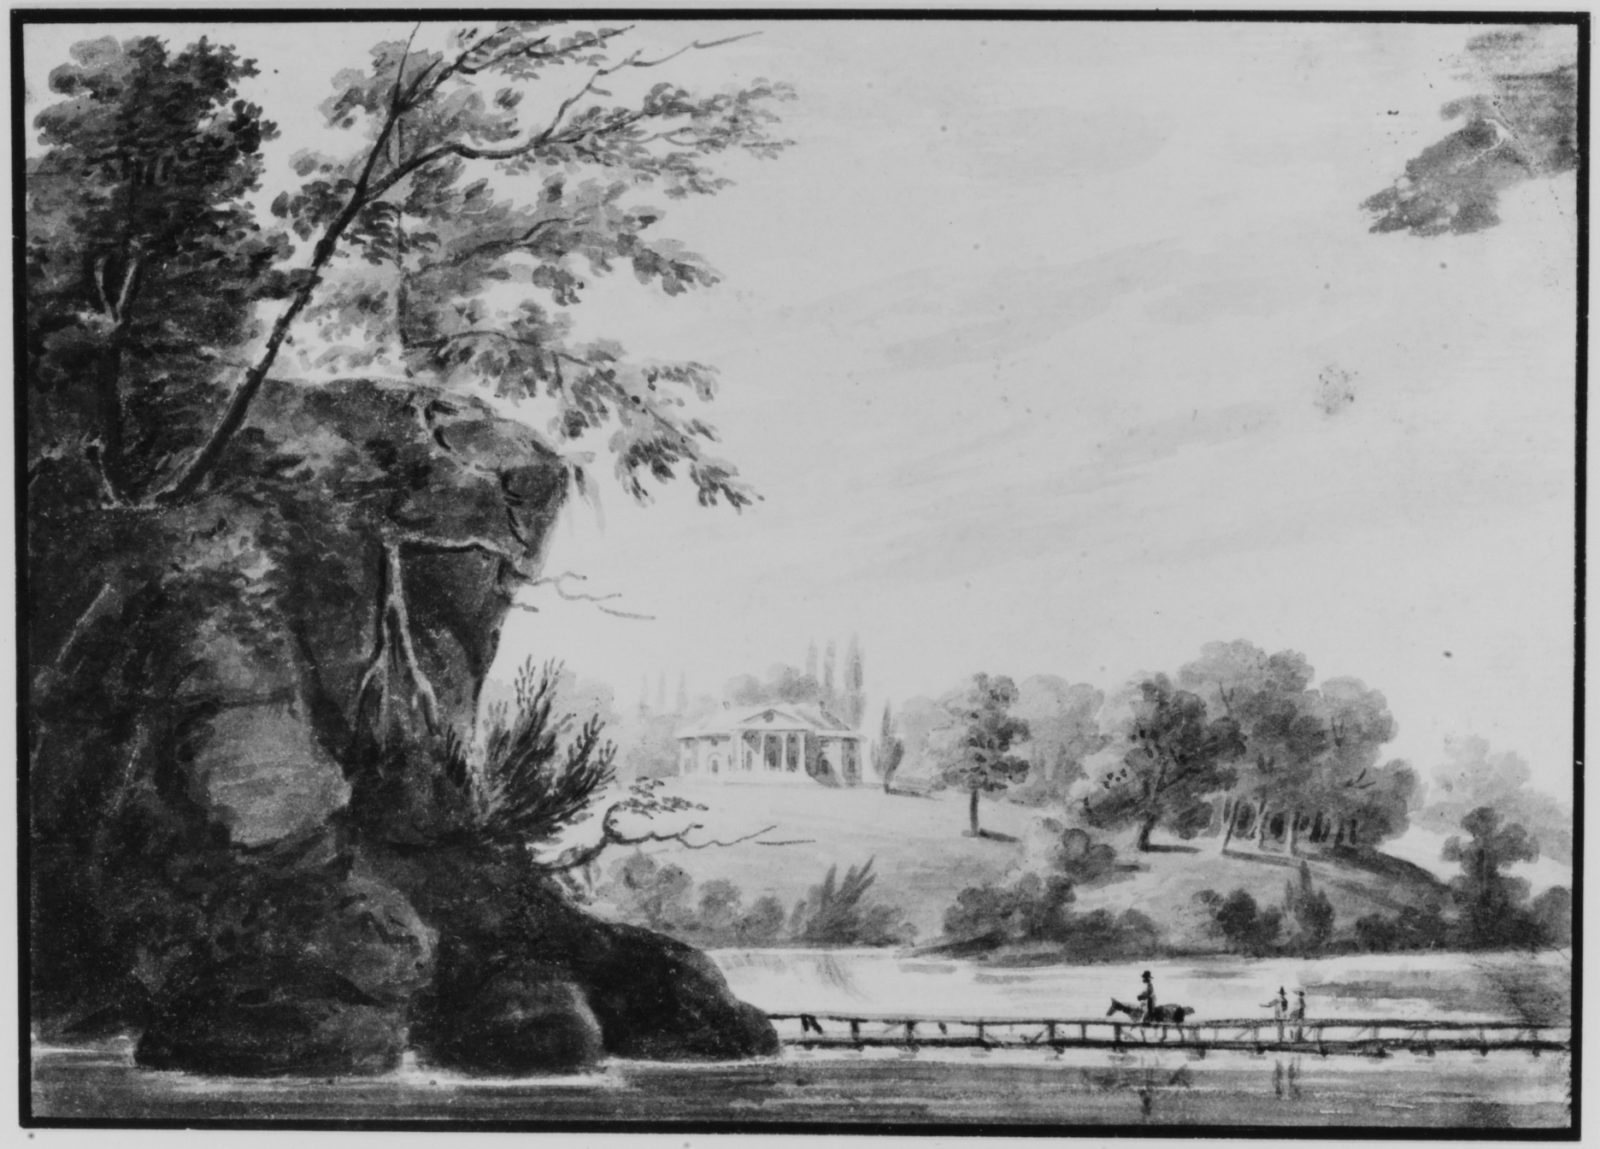 View of Morrisville, General Moreau's Country House in Pennsylvania, Possibly The Woodlands, Pennsylvania